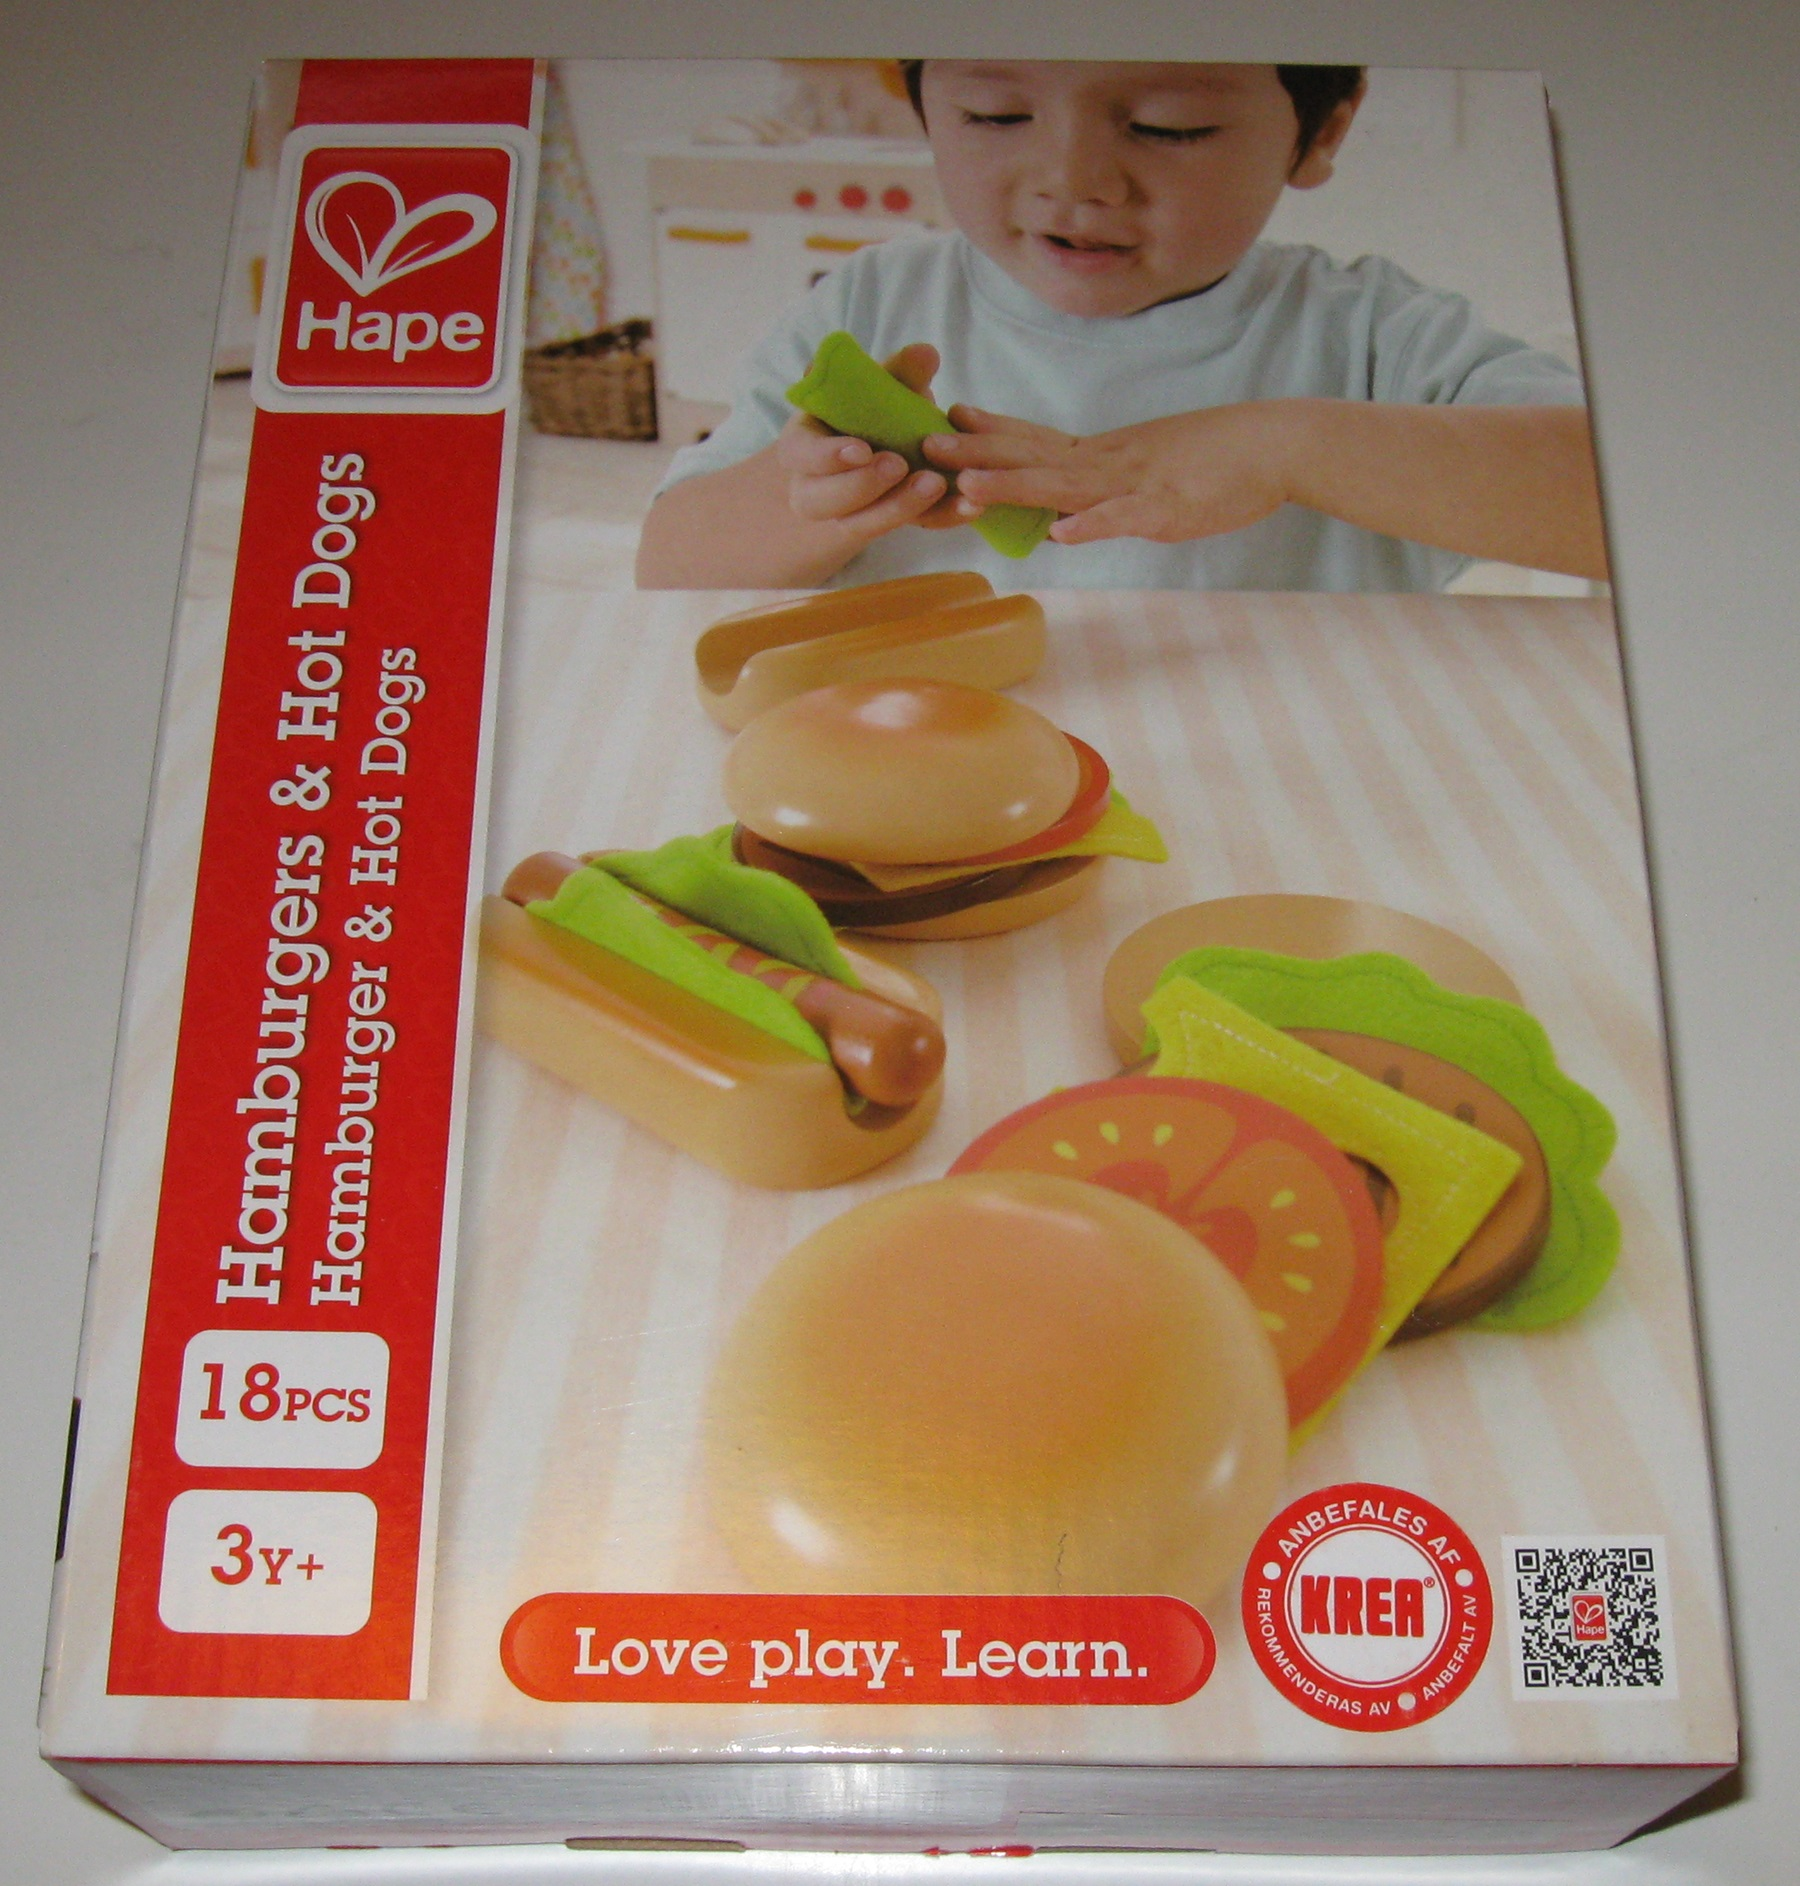 Hape Hamburger & Hot dogs